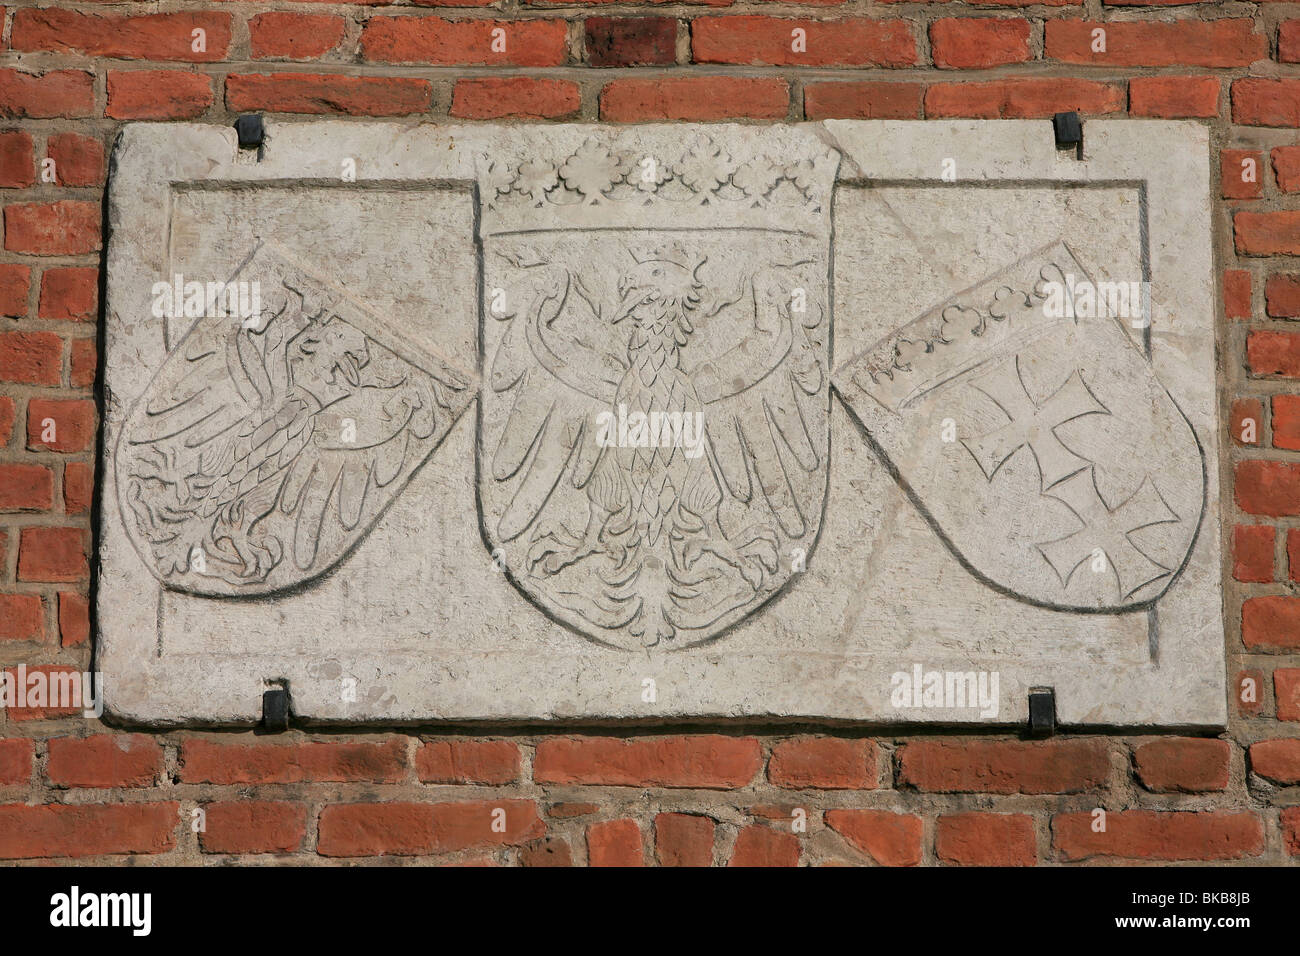 Polish Coat Of Arms Outside The Green Gate In Gdansk, Poland